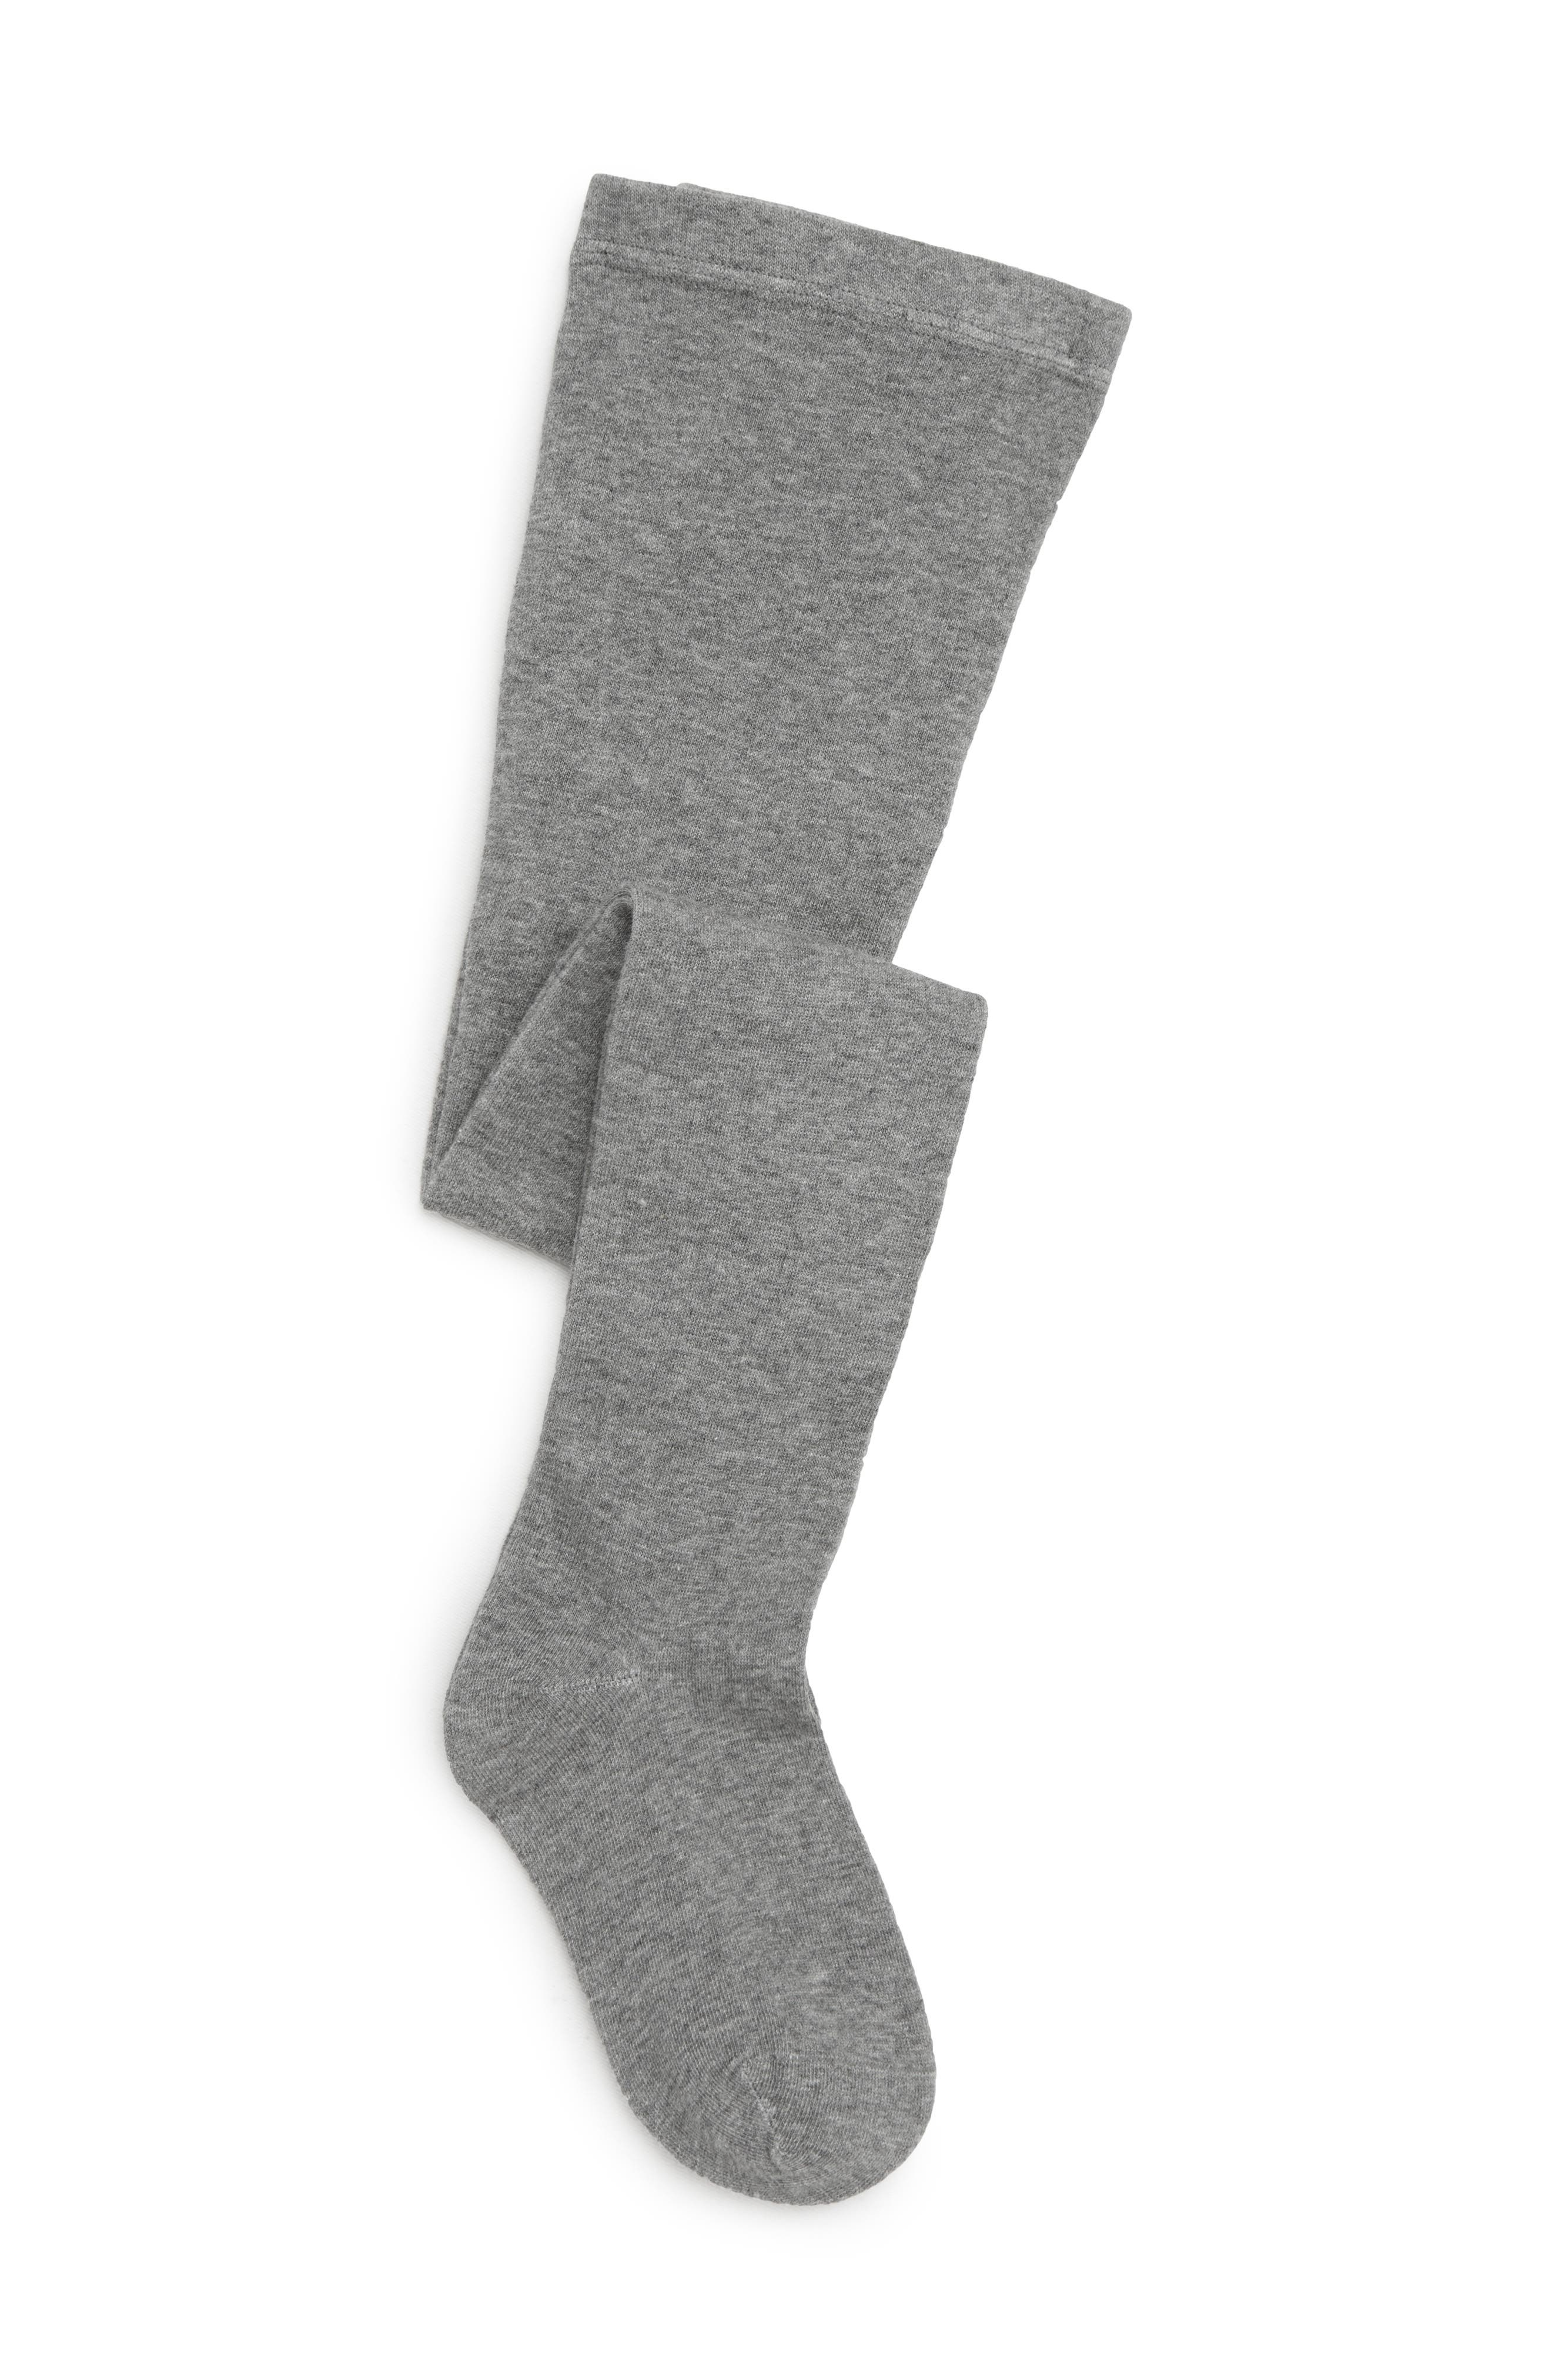 Nordstrom Sweater Tights,                             Main thumbnail 1, color,                             HEATHER GREY